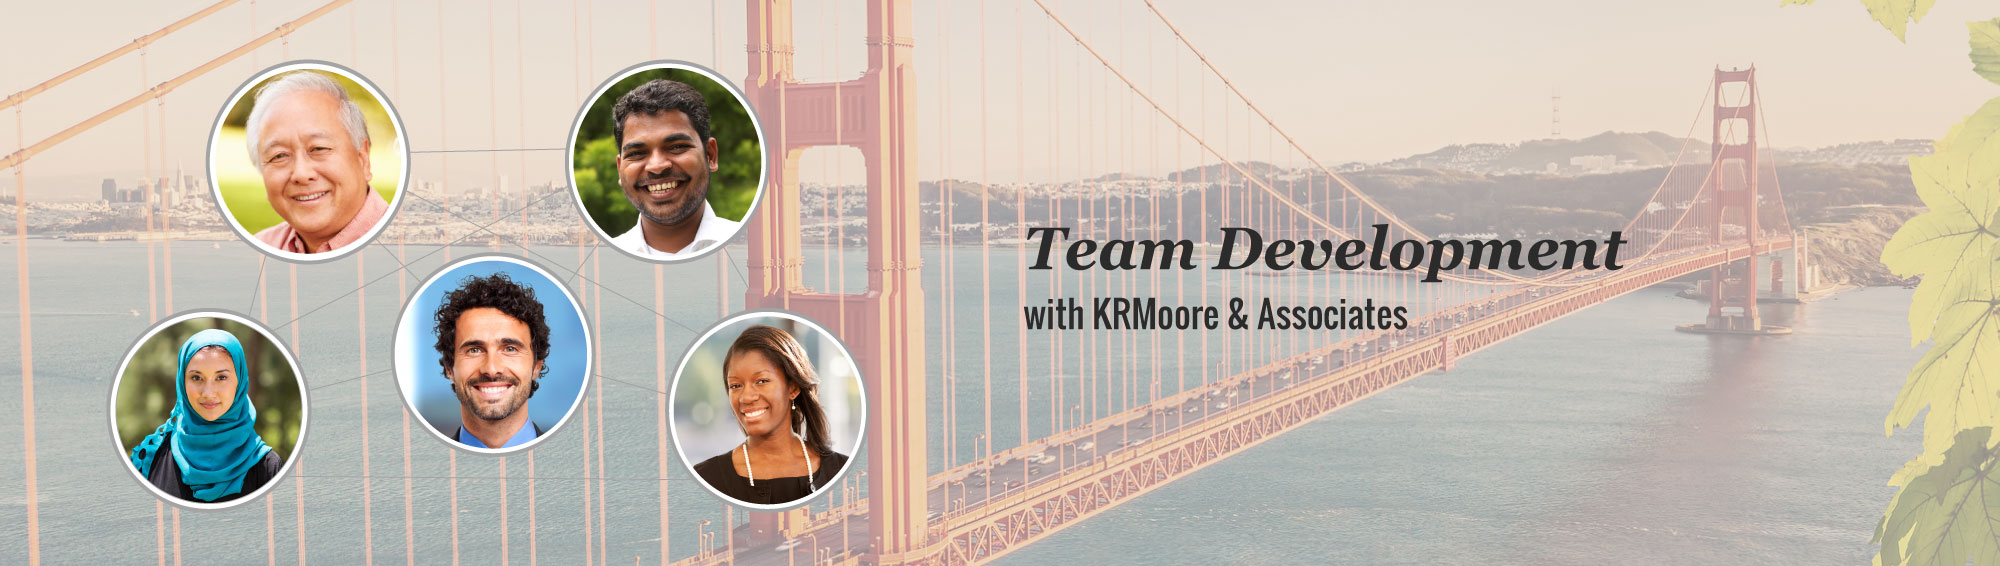 Team Development with KRMoore & Associates